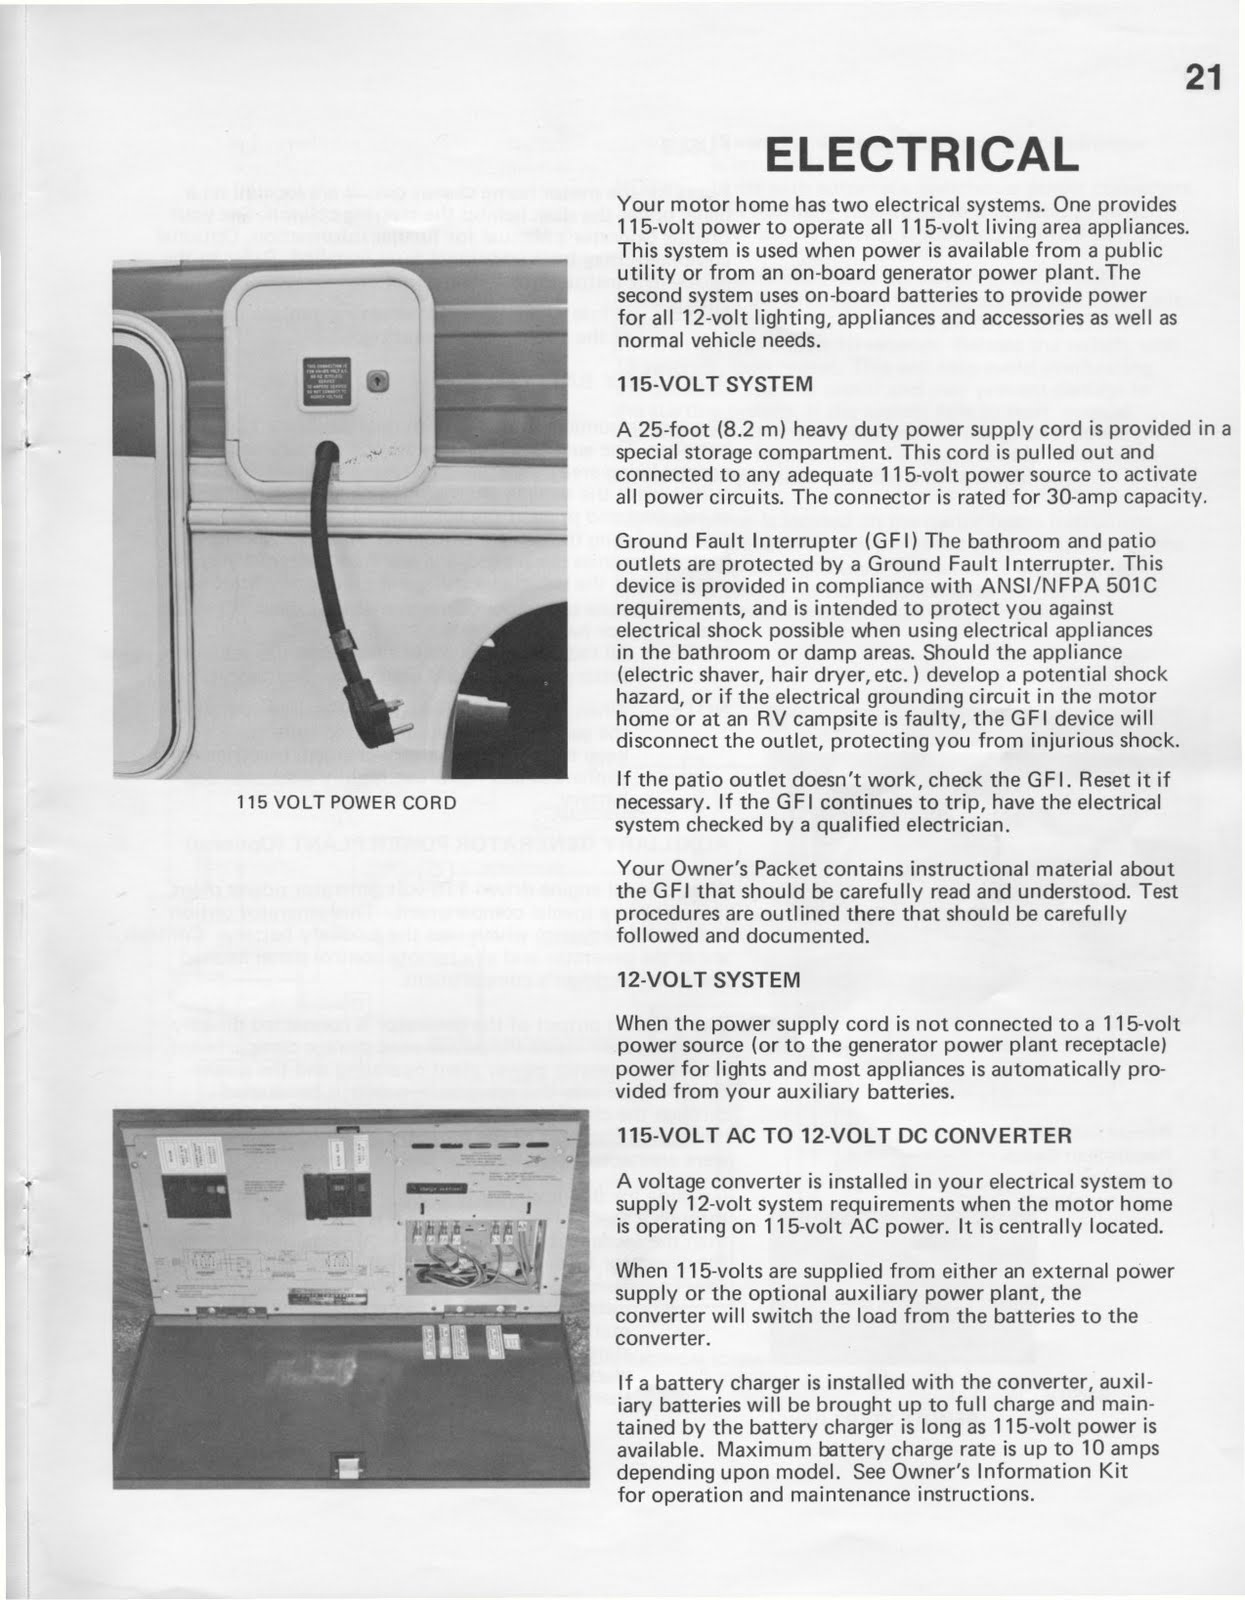 1983 Fleetwood Pace Arrow Owners Manuals on fleetwood mallard wiring diagram, fleetwood bounder electrical diagram, country coach wiring diagram, fleetwood motorhome parts, fleetwood rv battery diagram, fleetwood mobile home wiring diagram, fleetwood southwind motorhome, ford 7 pin wiring diagram, fleetwood prowler wiring diagram, 1991 southwind motorhome electrical diagram, basic tail light wiring diagram, fleetwood discovery wiring diagram, magnetek power converter wiring diagram, fleetwood motorhome accessories, fleetwood motorhome headlights, fleetwood folding camper wiring diagram, fleetwood park model wiring diagram, fleetwood rv motorhome, coleman pop up camper wiring diagram, rv electrical diagram,